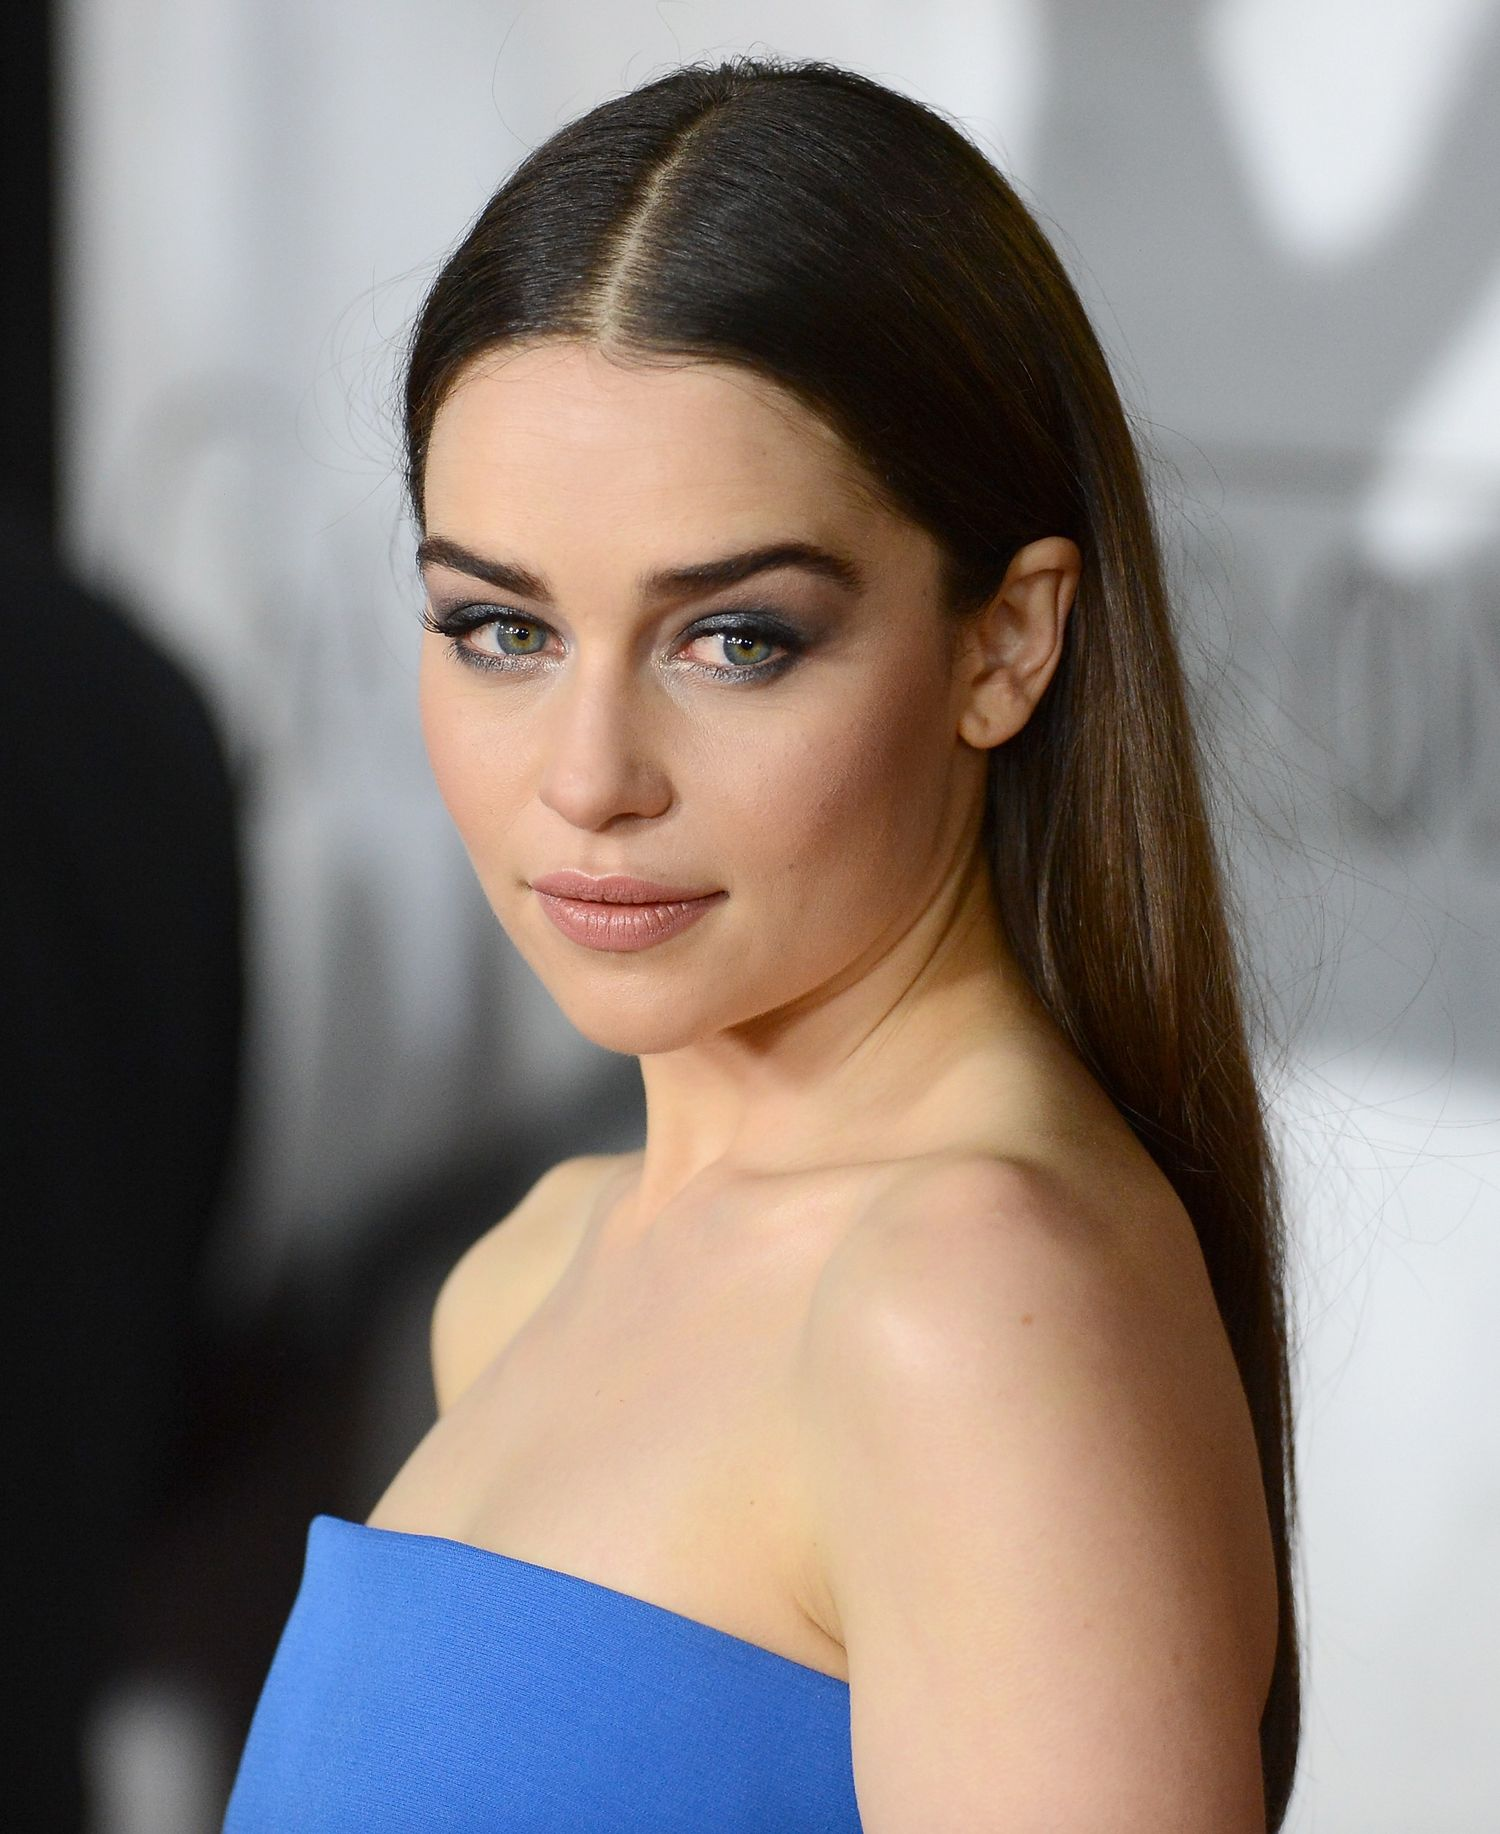 brunette_emilia-clarke-game-of-thrones-premiere-eye-makeup-main